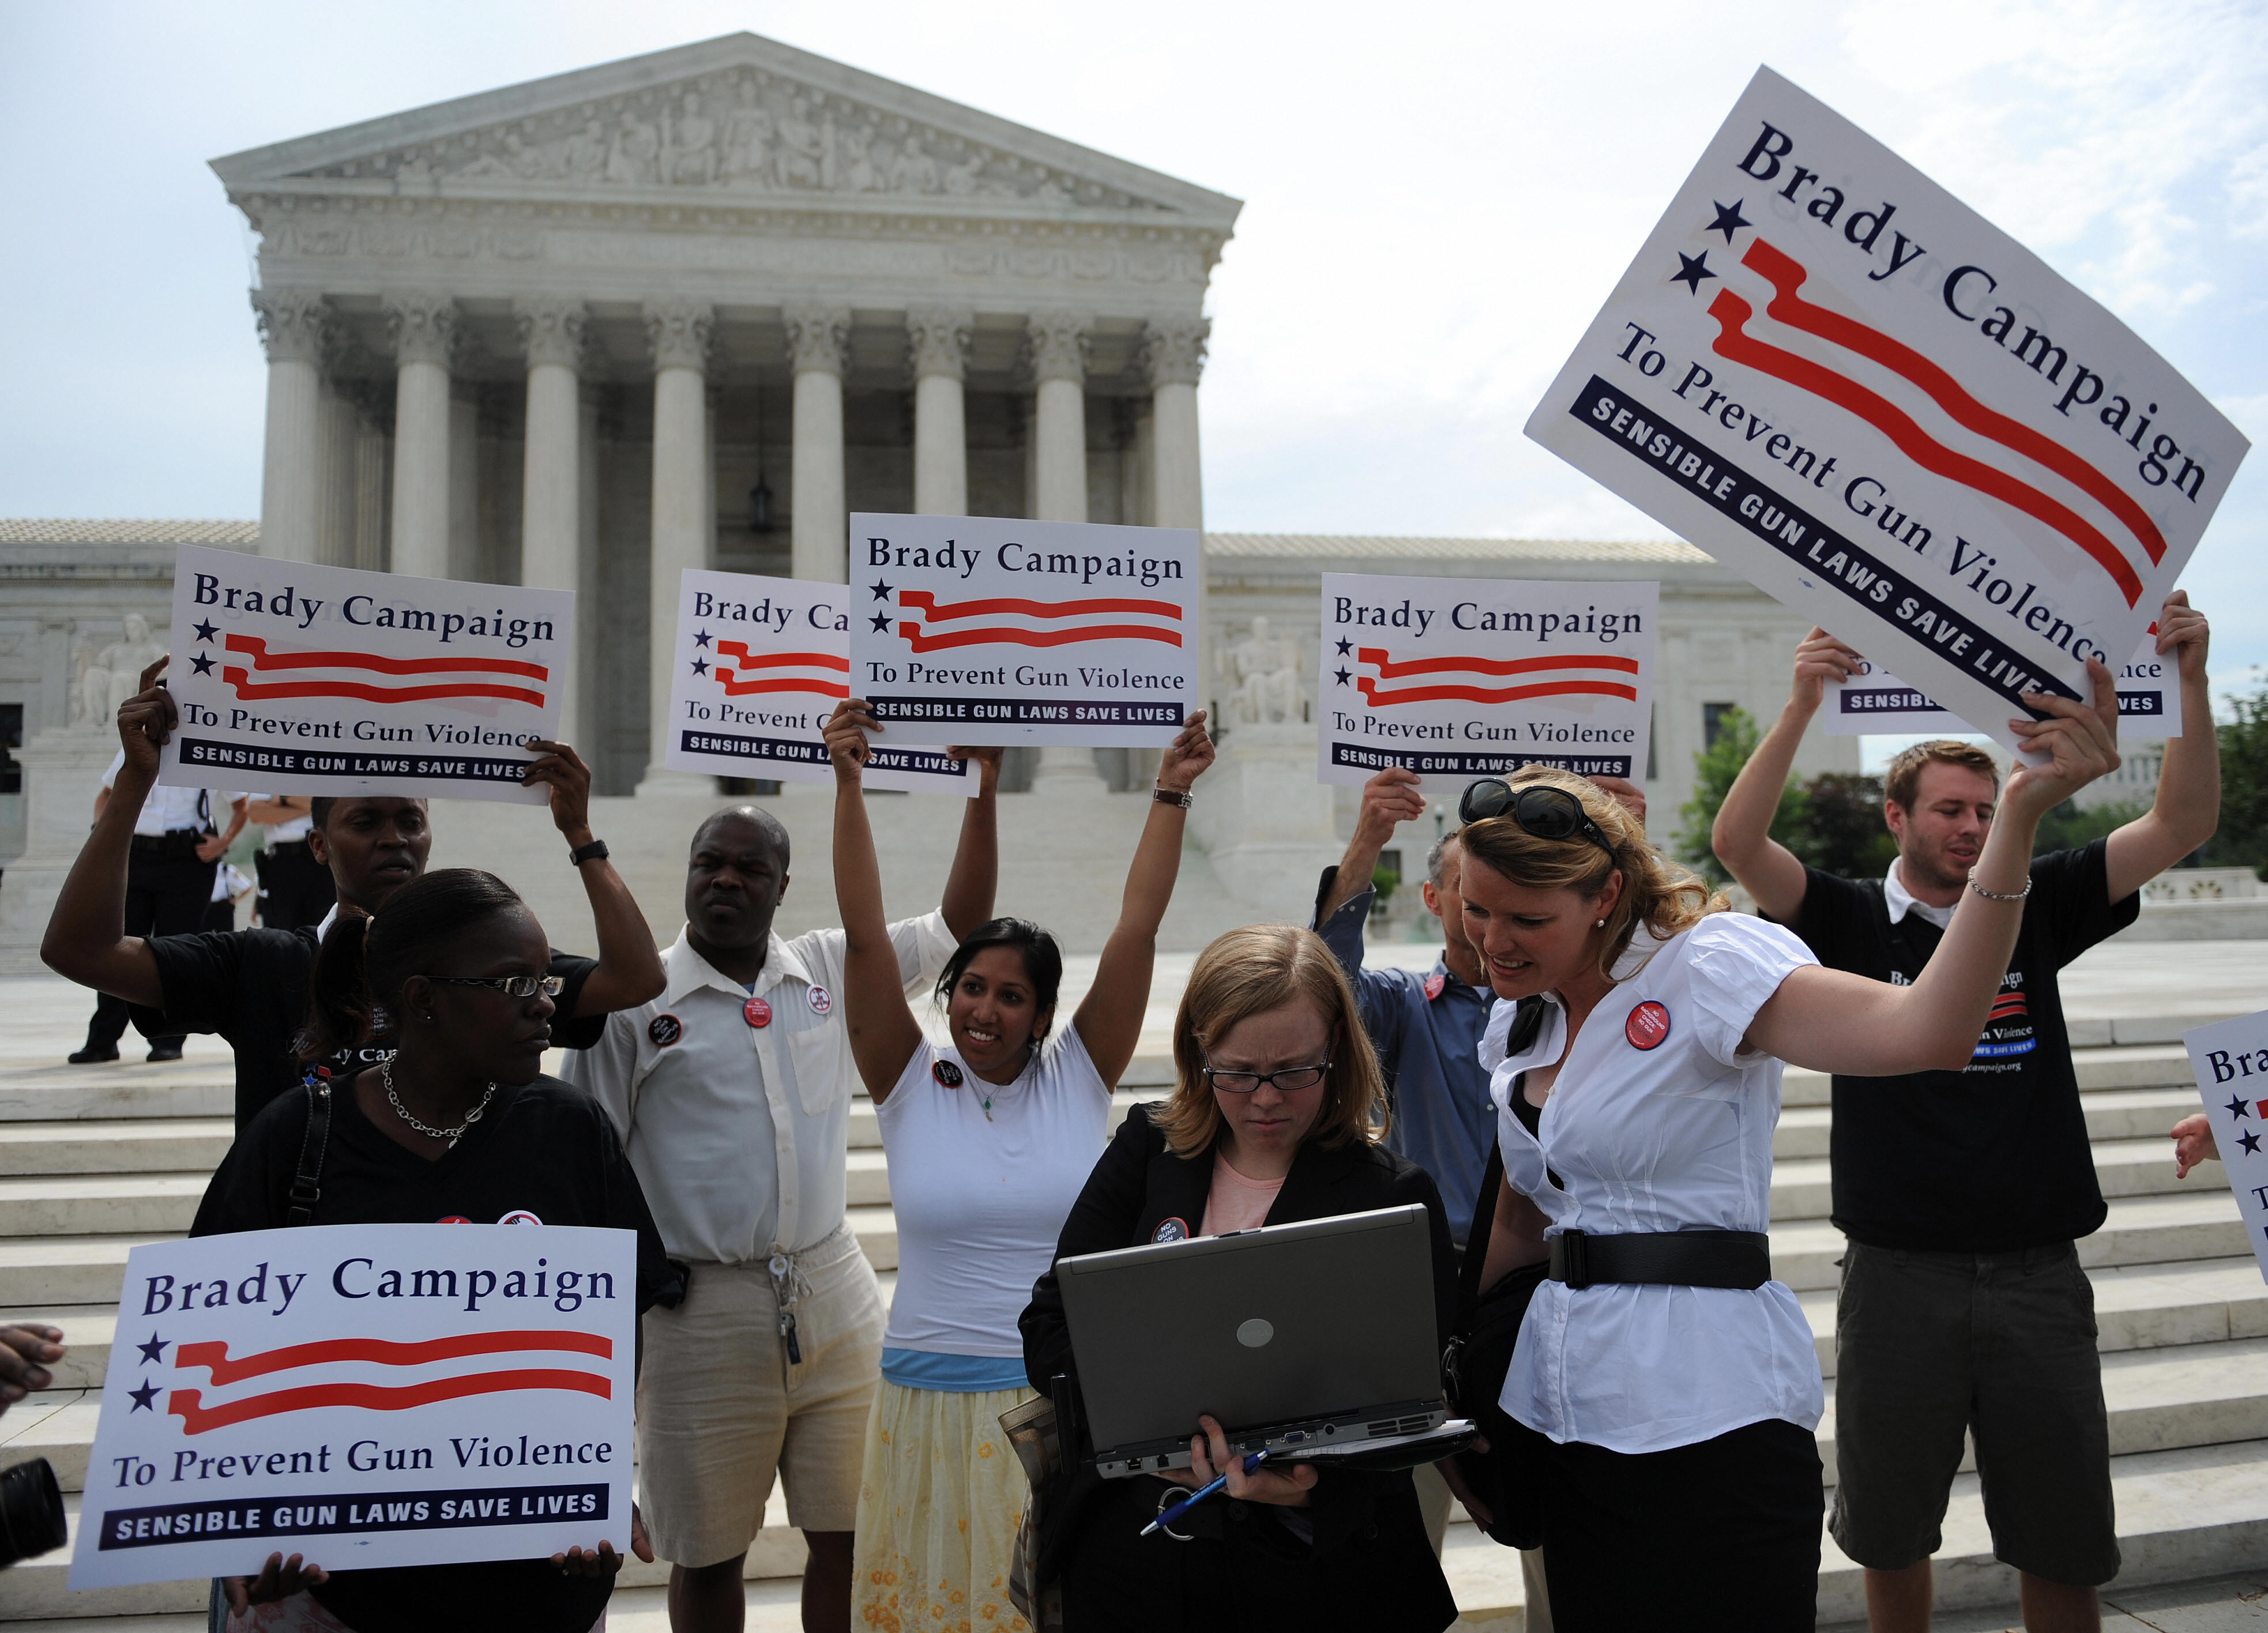 Gun opponents get the news from the Supreme Court ended a ban on owning handguns in Washington, D.C. on June 26, 2008. (Tim Sloan/AFP/Getty Images)